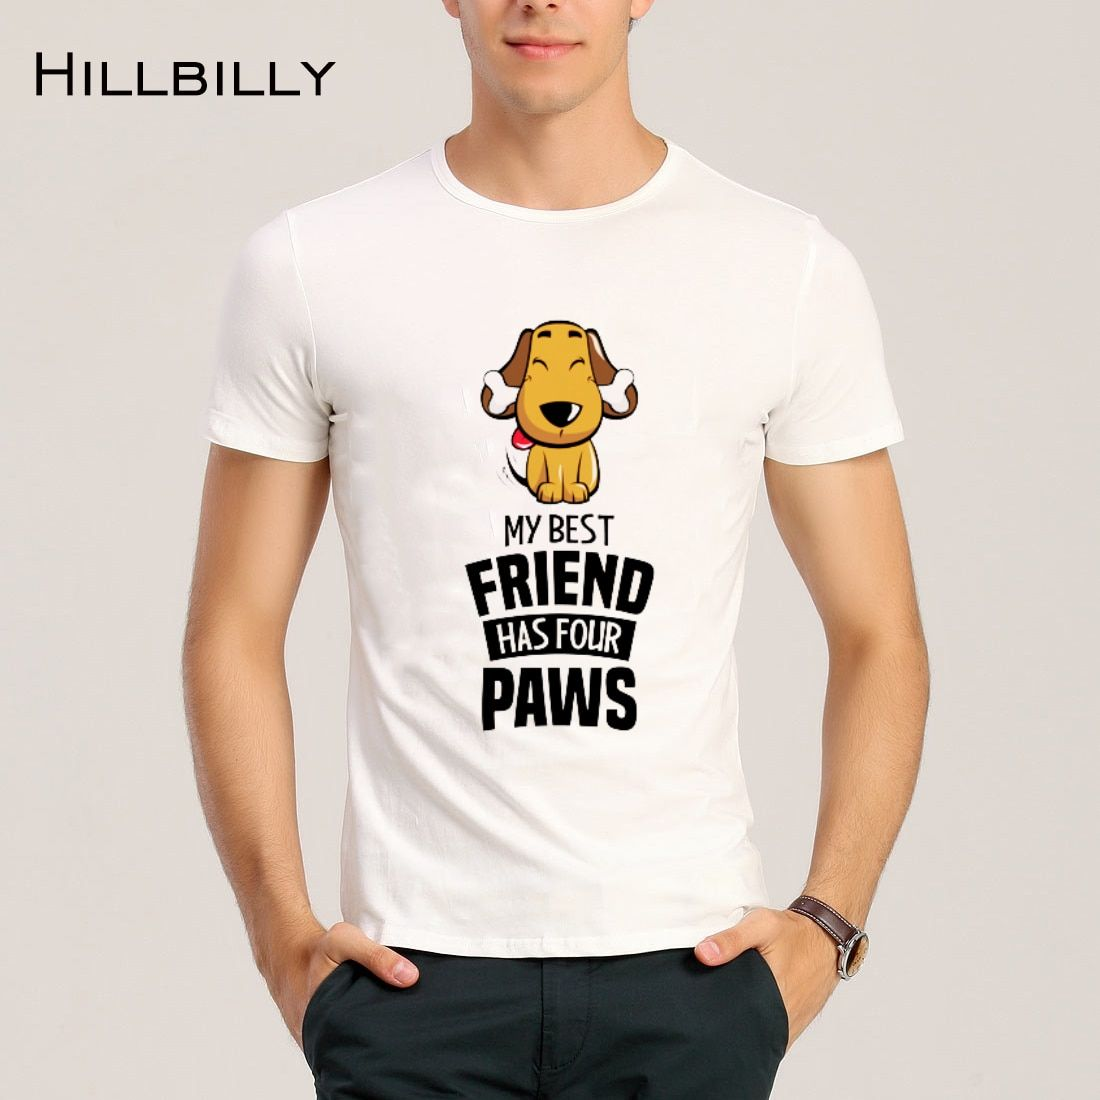 2017 Summer New Fashion Funny Cartoon Style Dog Printed T shirt Hillbilly Modal O-Neck Broadcloth Wild Street Man Casual T-shirt